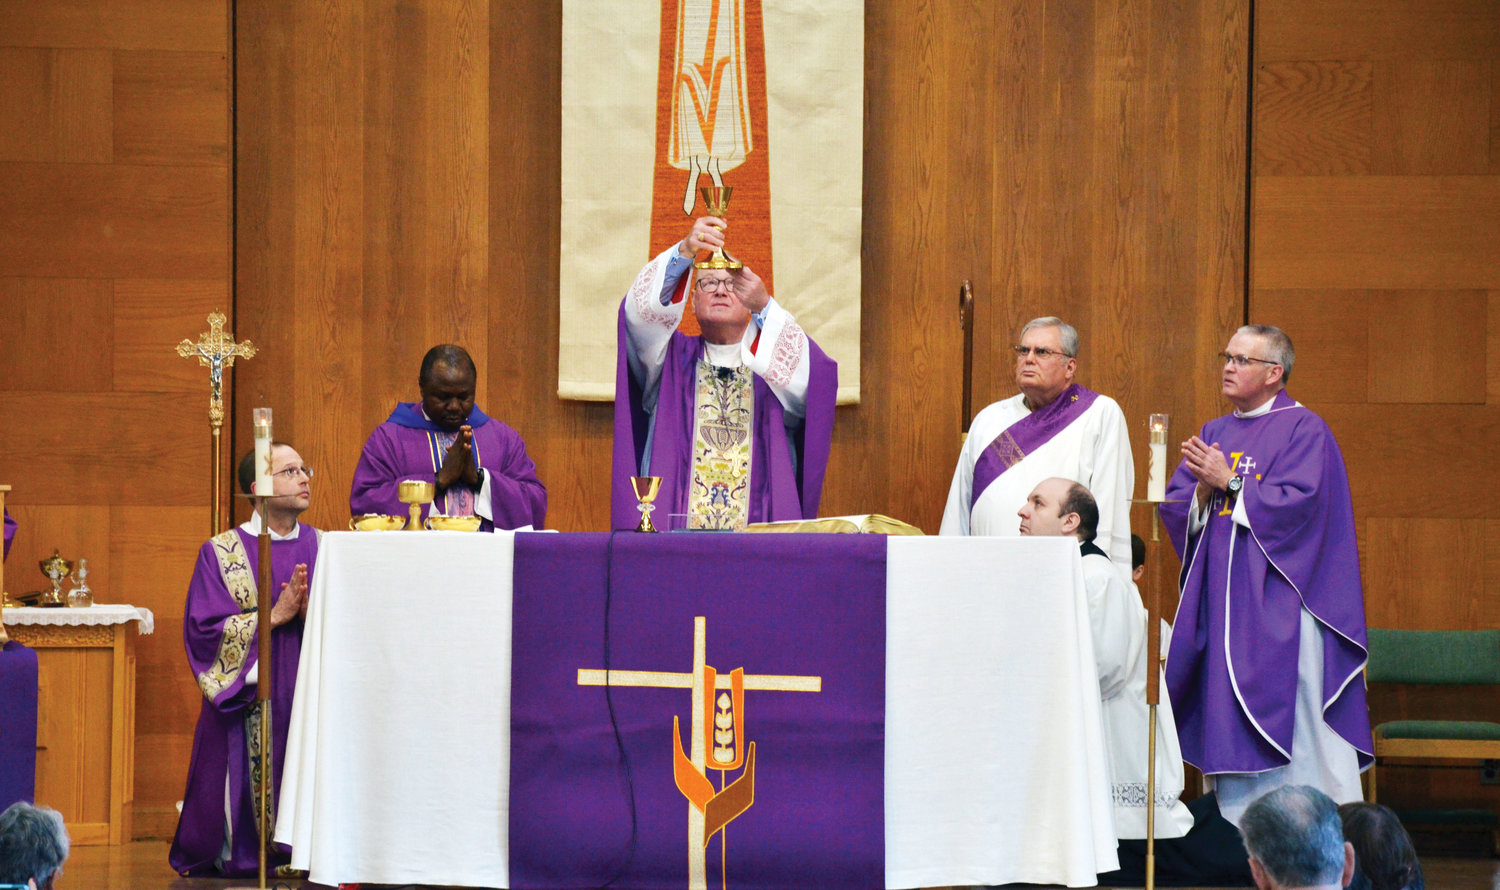 The cardinal elevates the Eucharist. From far left at the altar are Deacon Raymond Ricci, kneeling; Father David Didam, parochial vicar; Cardinal Dolan; Deacon Richard Santana; Father James Ferreira, the cardinal's priest secretary; and Father Patrick Buckley, the pastor of St. Christopher and St. Sylvia parish.